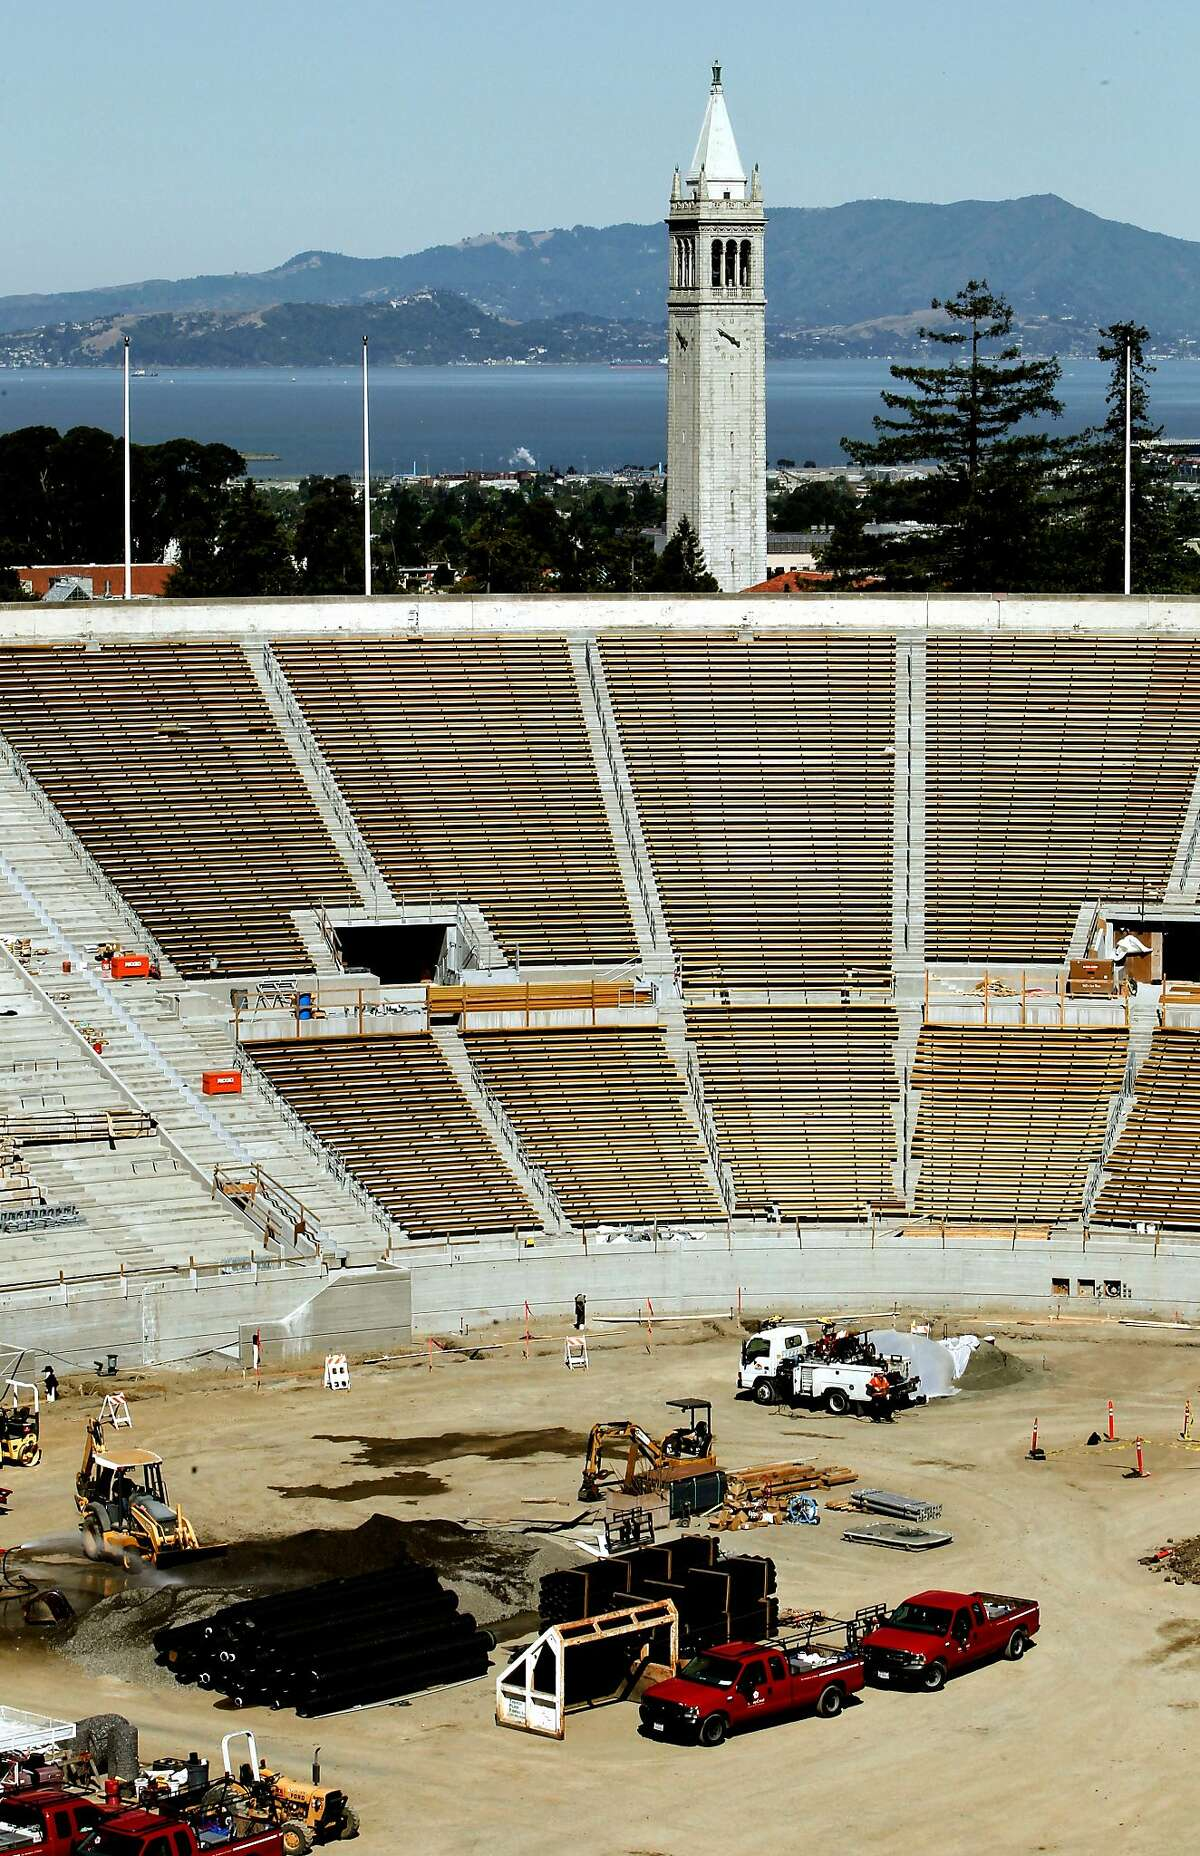 UC Berkeley's Cal Memorial Stadium, as construction crews are busy putting the finishing touches on the renovation project, on Saturday June 9, 2012, in Berkeley, Ca.